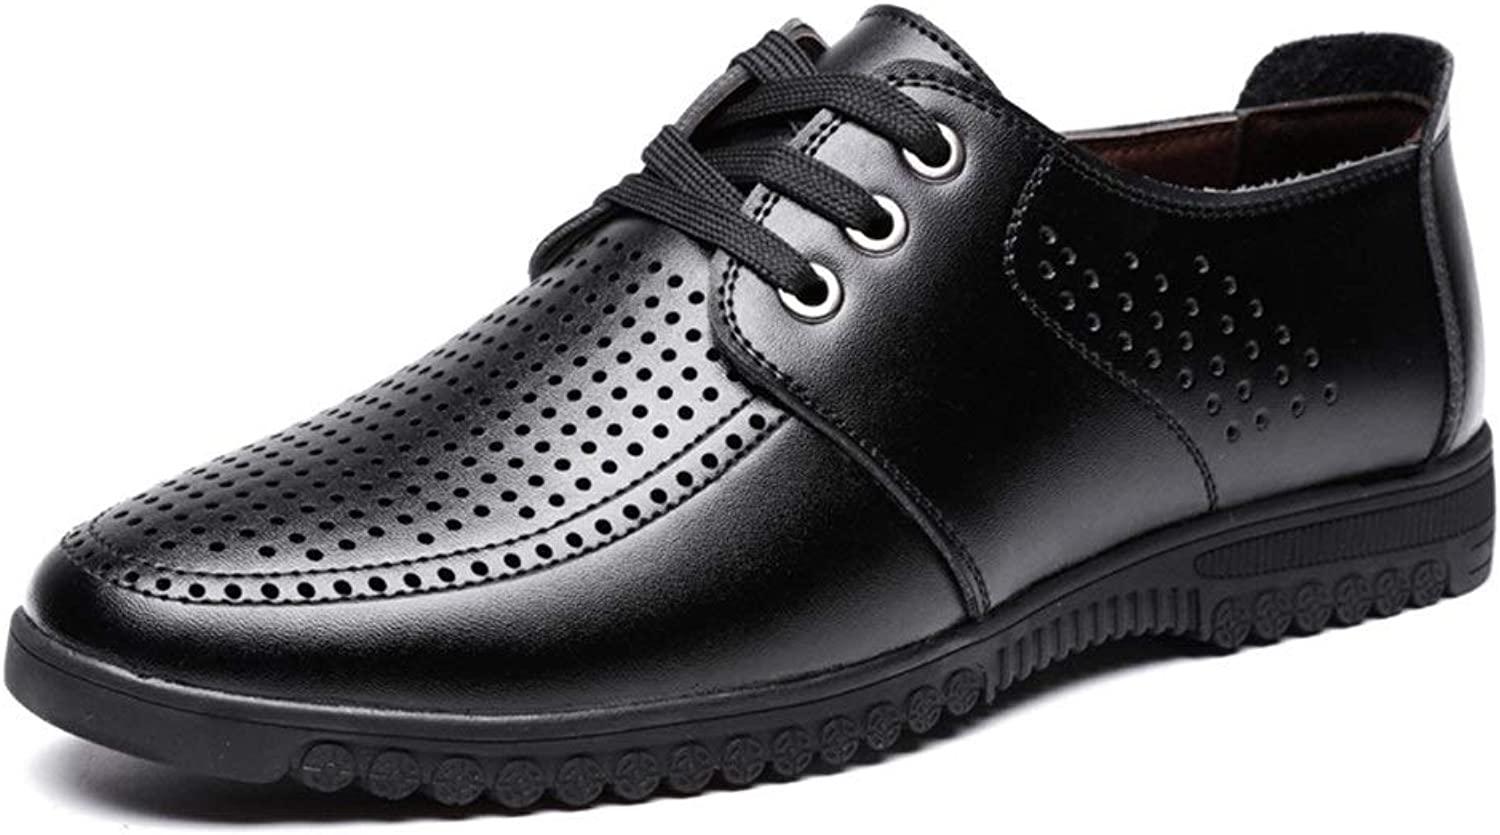 Ino Oxford shoes for Men Formal shoes Lace Up Style Microfiber Leather Summer Vacuous Pure Colours Low Top